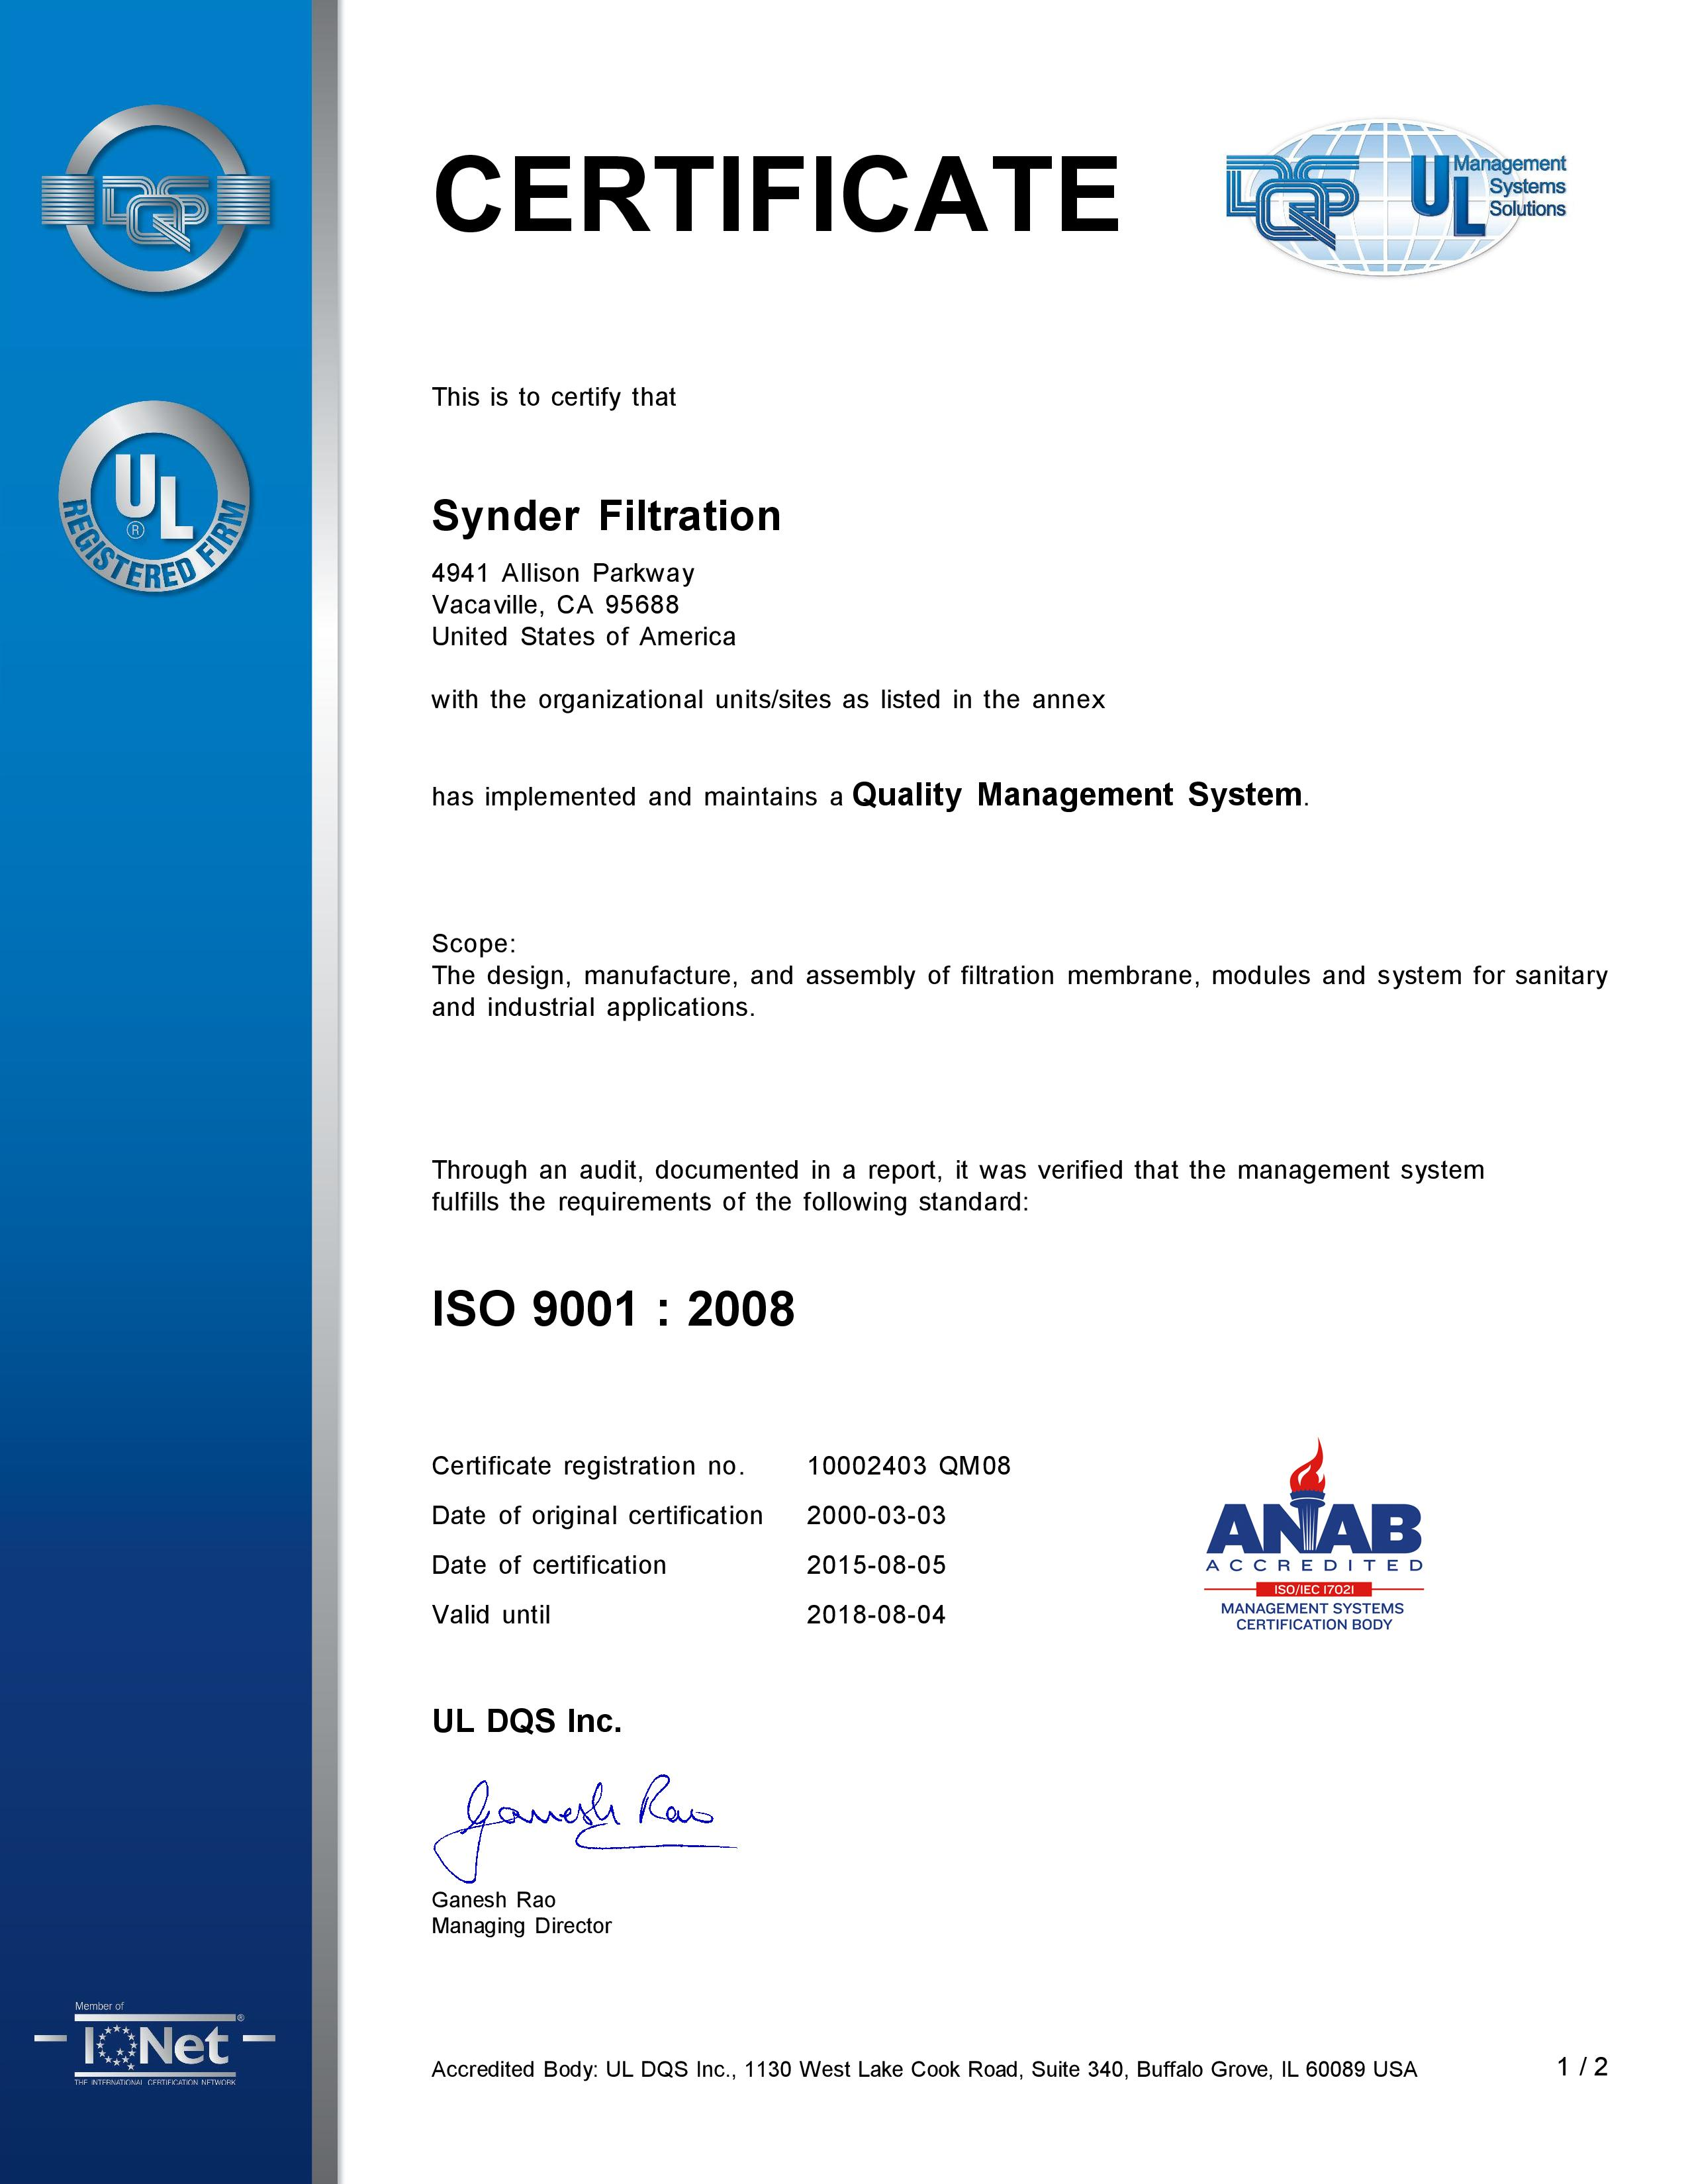 Iso 90012008 Certification Renewal Synder Filtration